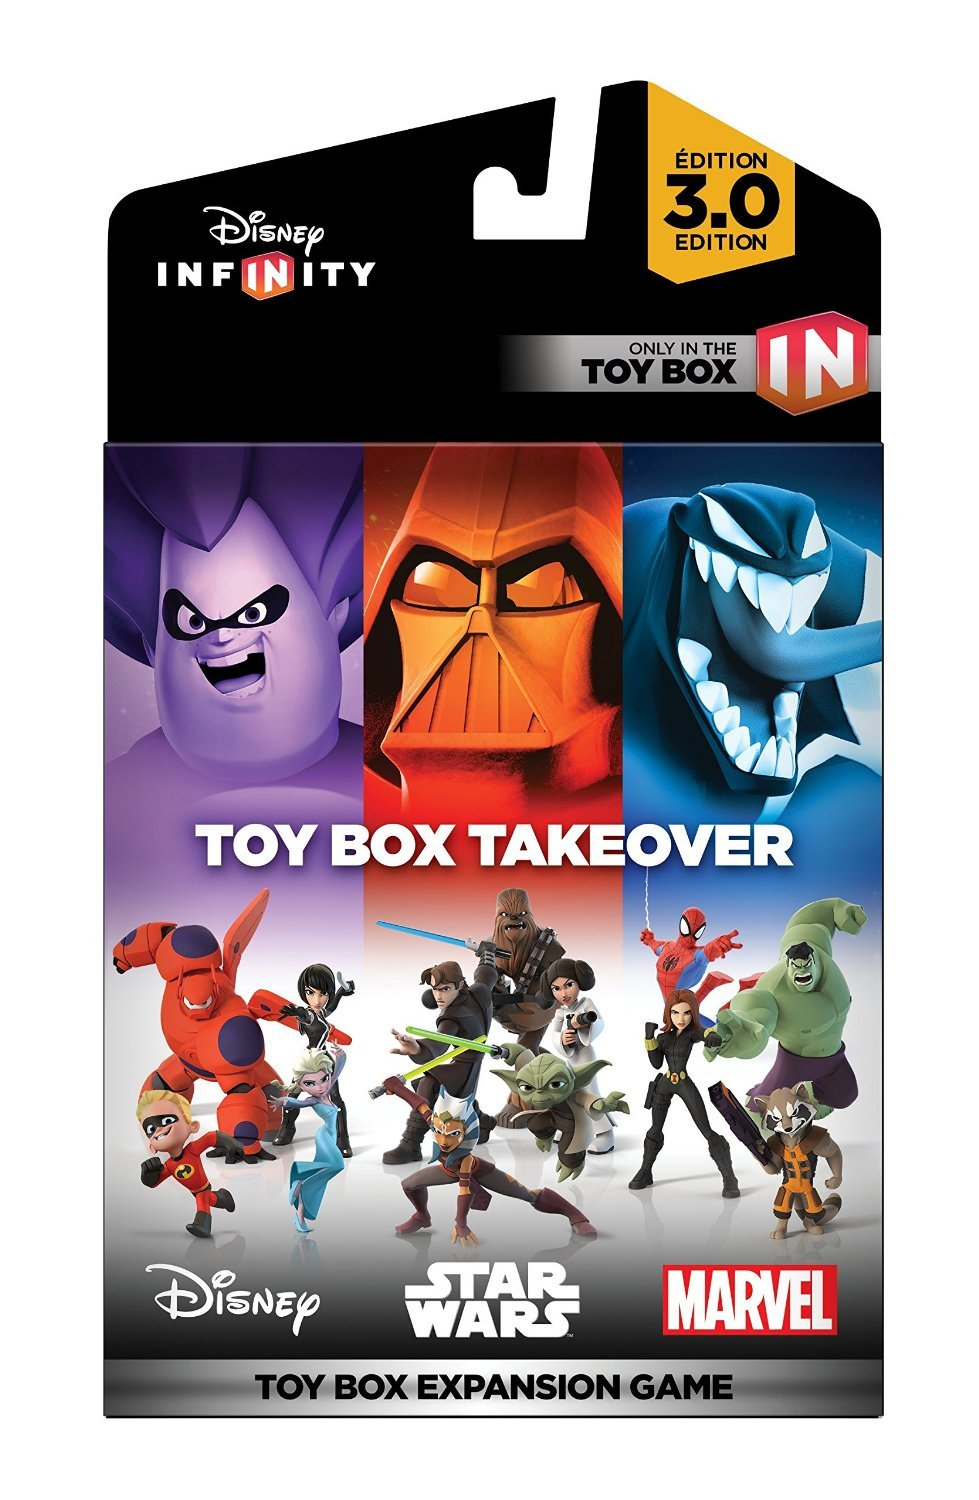 infinity 3 0. Disney Infinity 3.0 Toy Box Takeover - Edition: Xbox 360: Computer And Video Games Amazon.ca 3 0